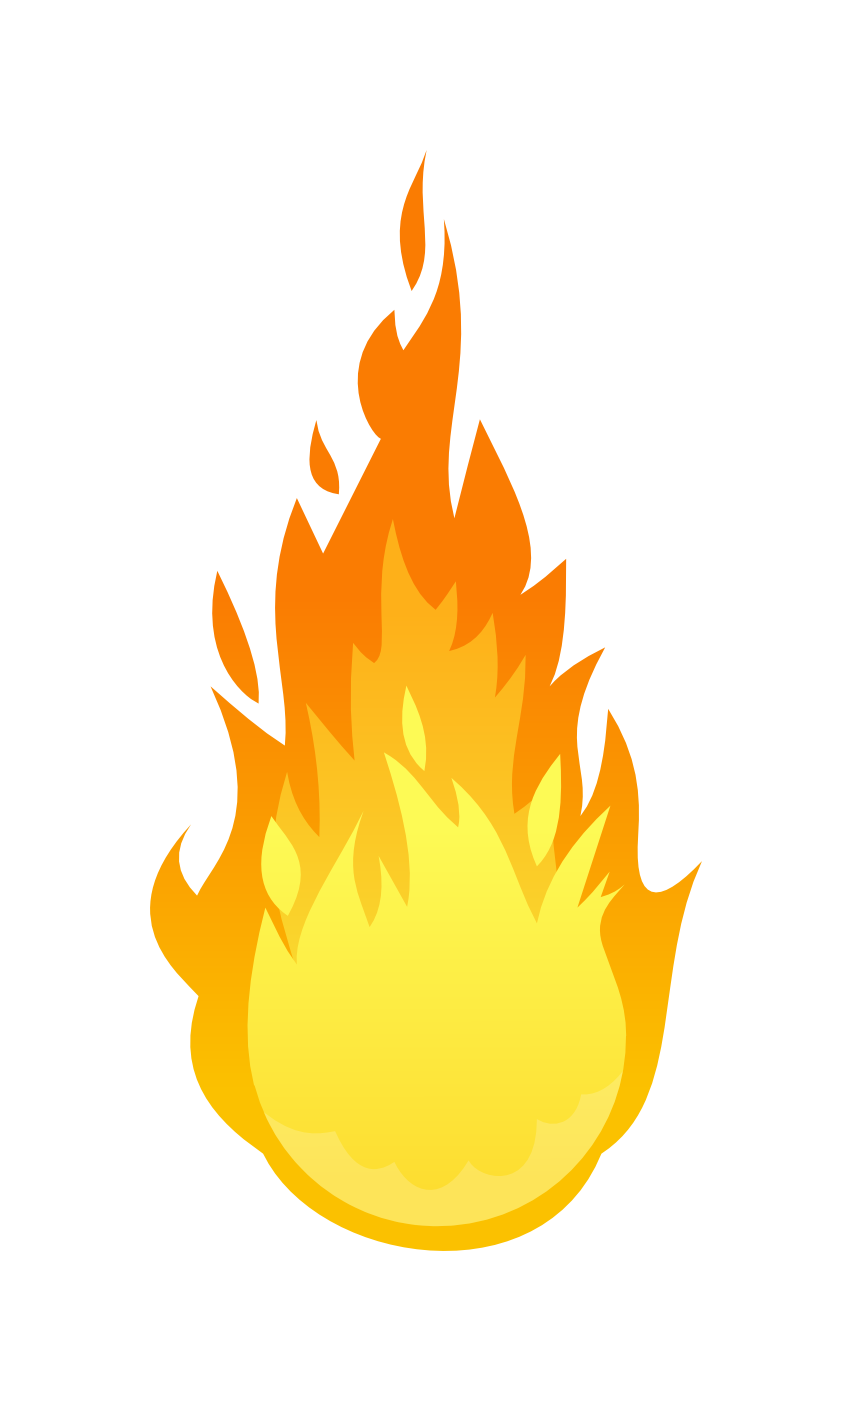 Fire Flame Transparent PNG Image